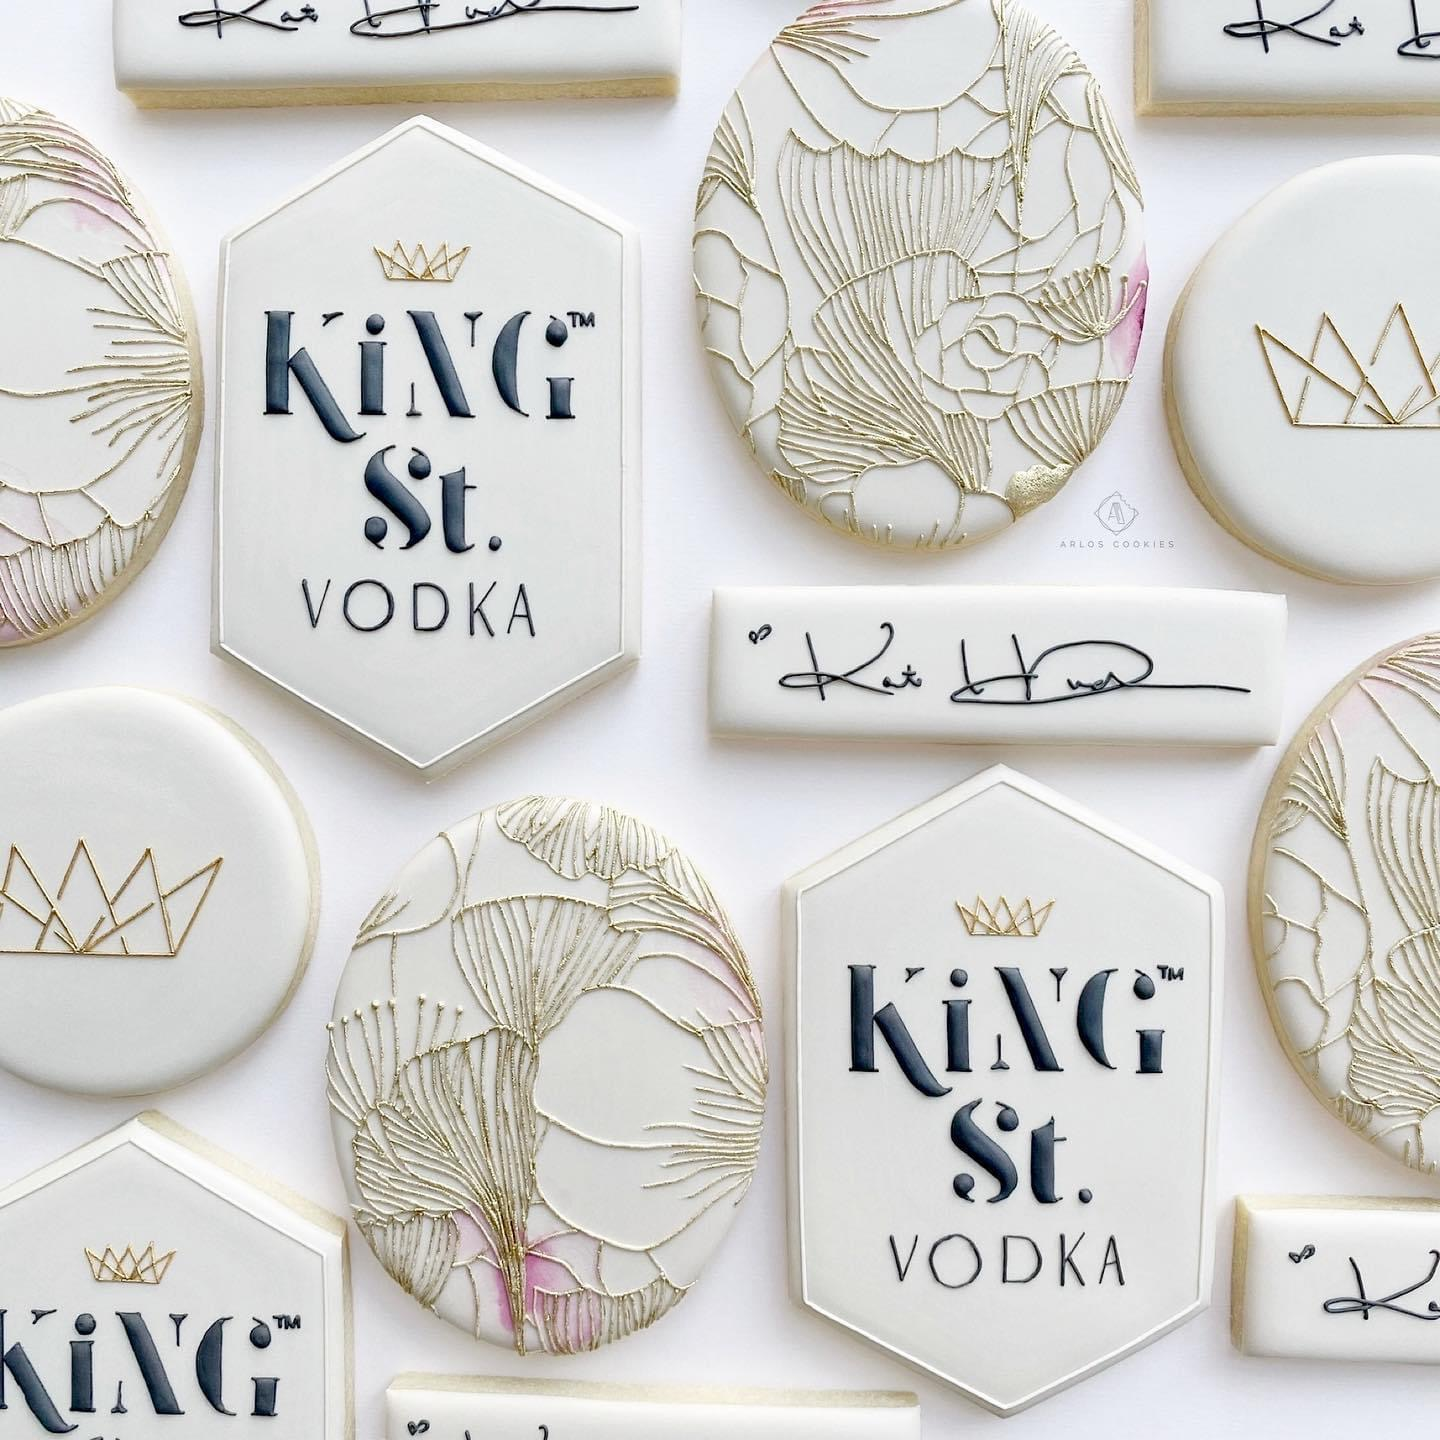 Cookies decorated with floral line drawings and the King St. Vodka logo